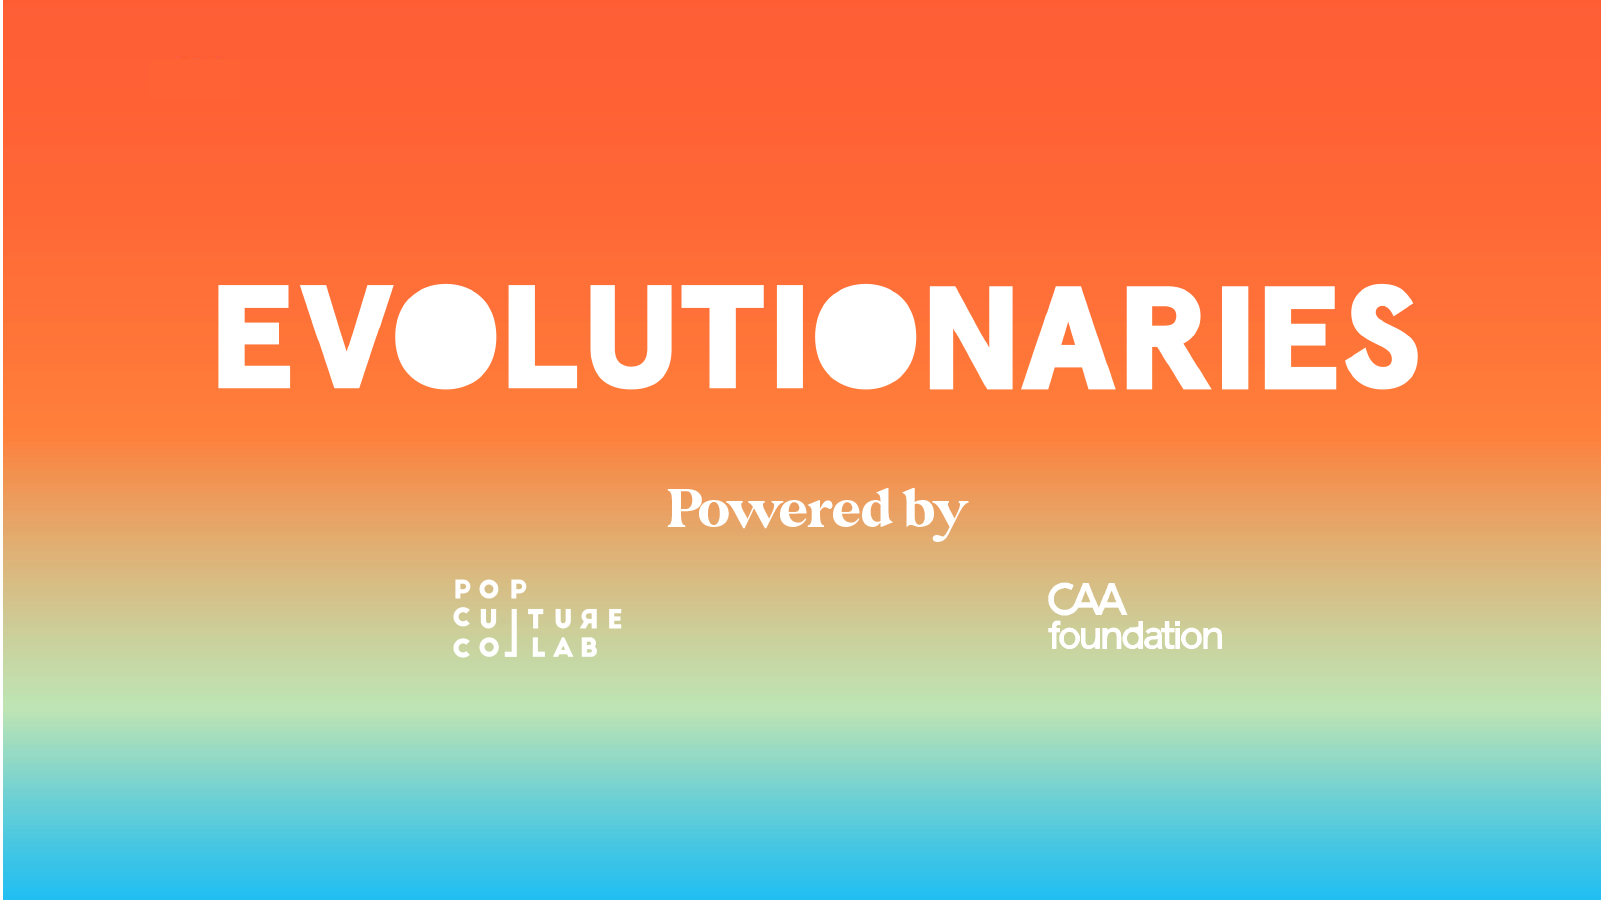 The CAA Foundation And Pop Culture Collaborative LaunchEvolutionaries; First Participants Revealed